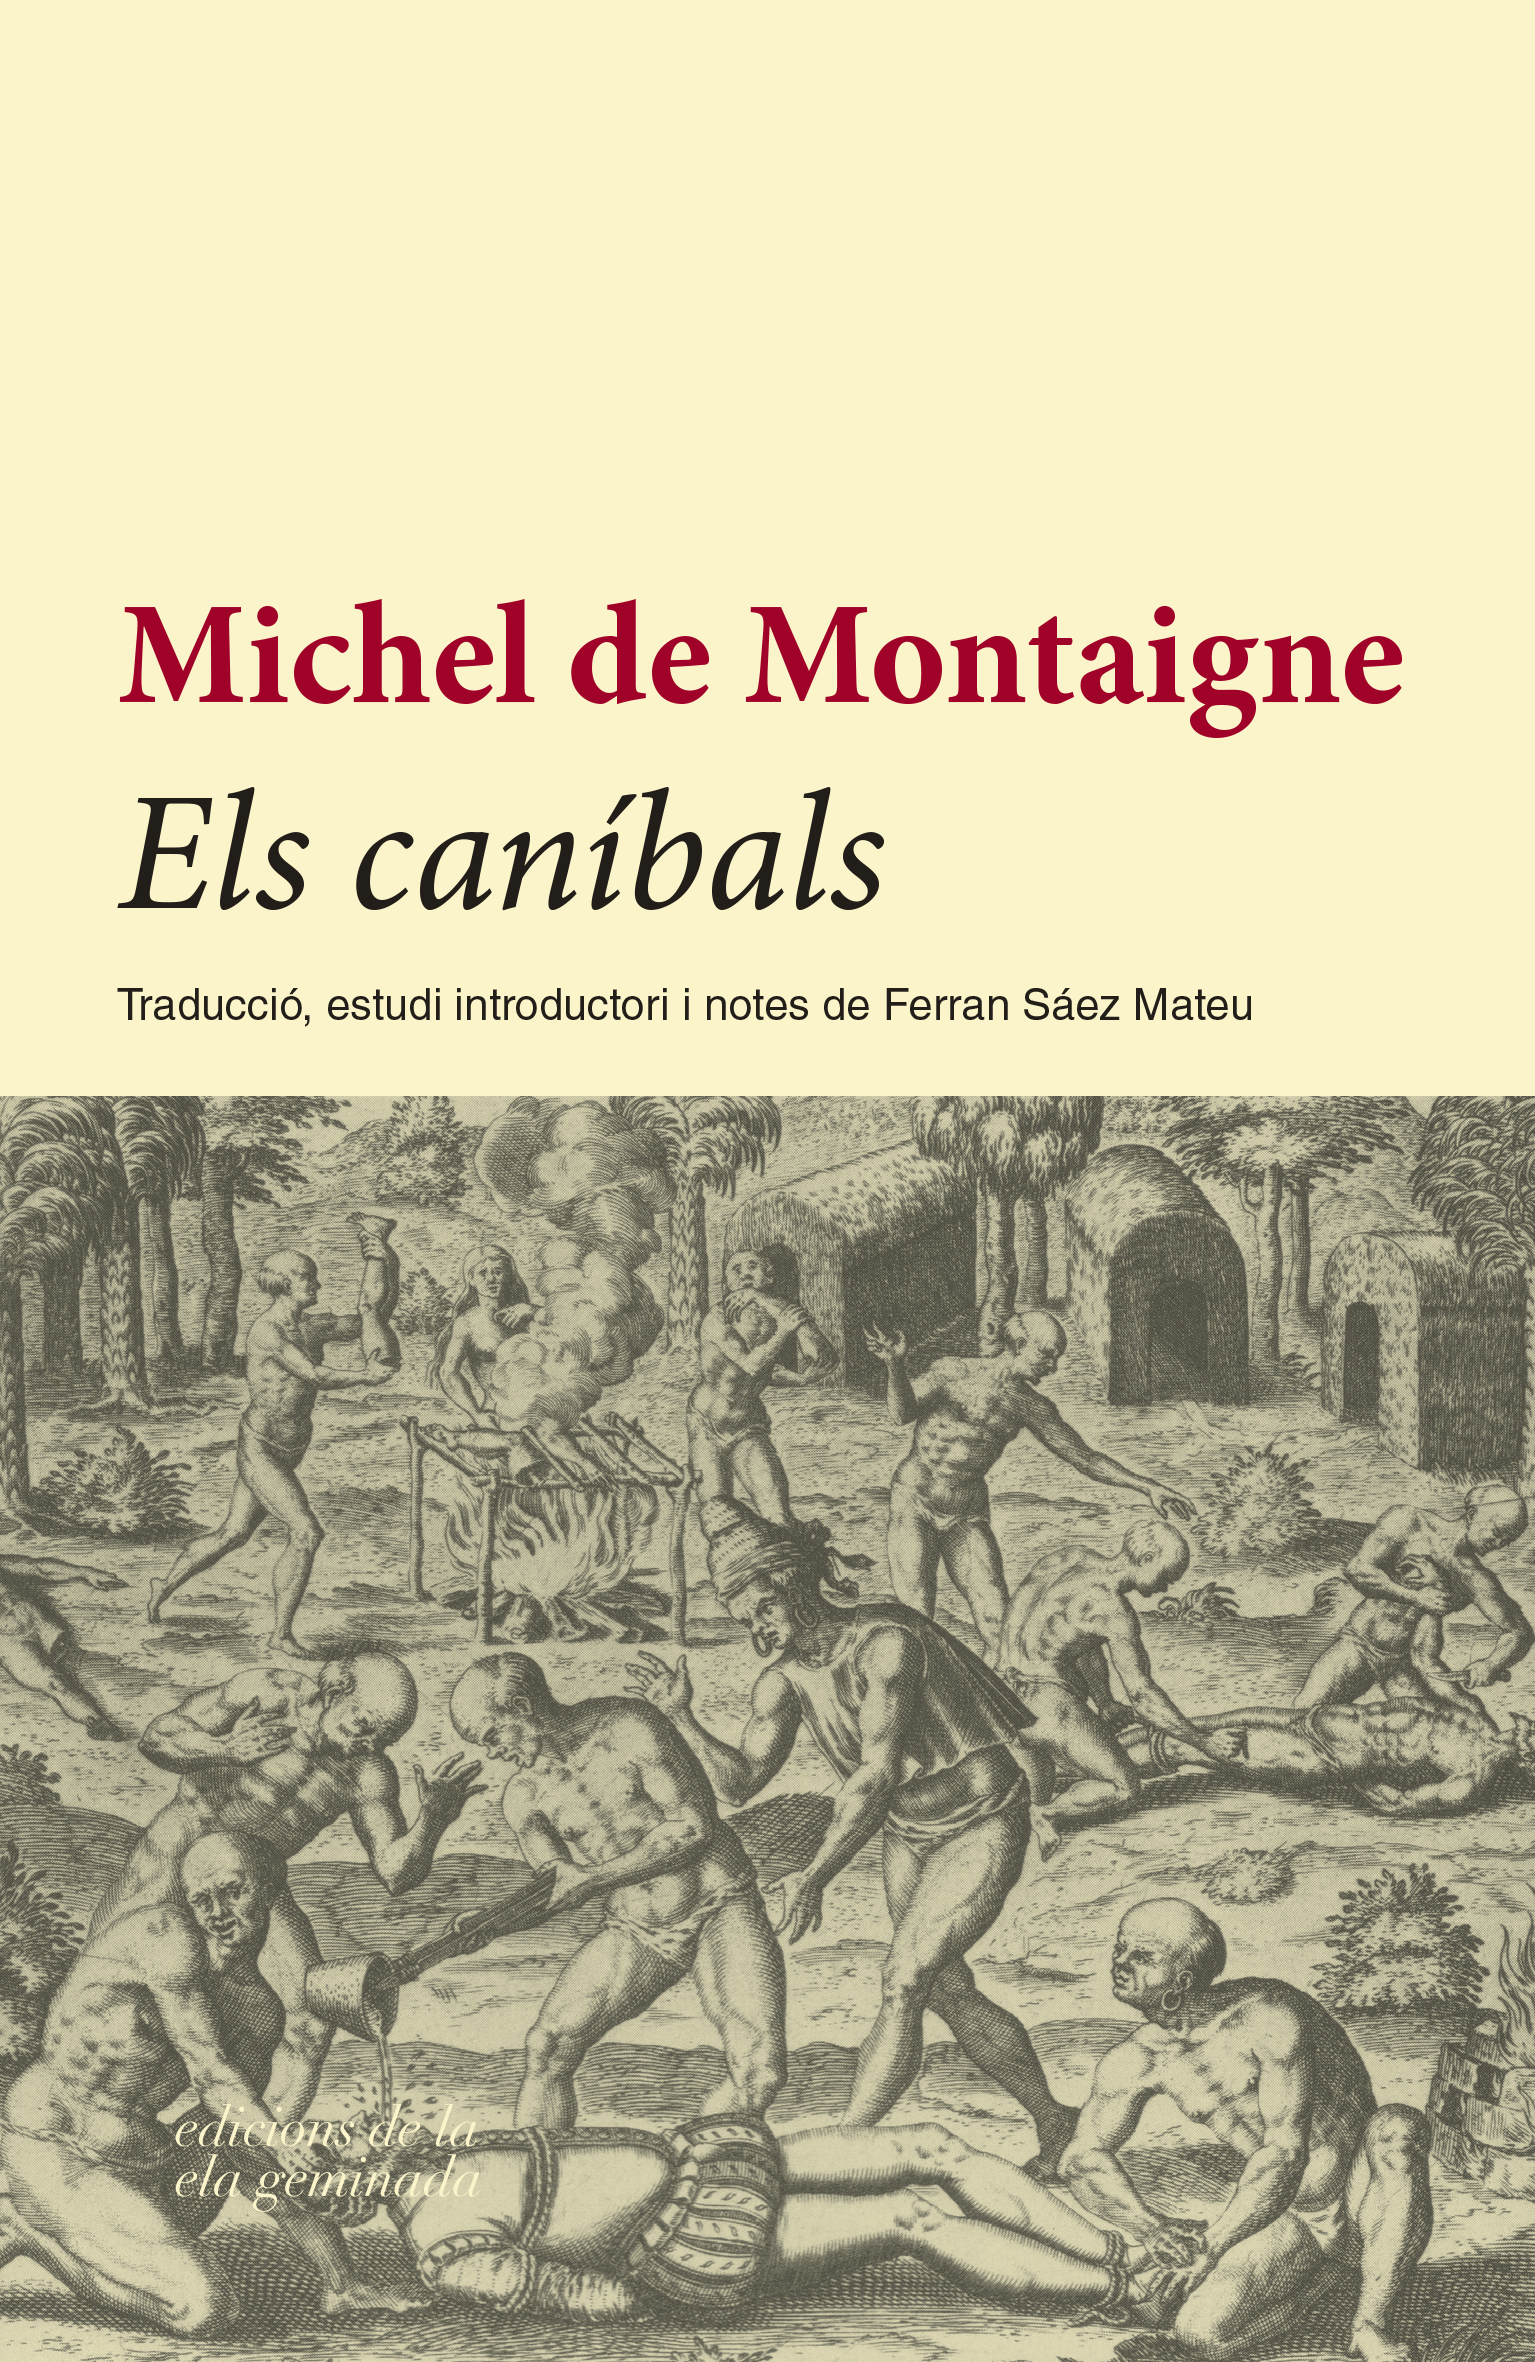 montaignes essay on cannibals Montaigne's essays ii of drunkennesse iii a custome of the ile of cea iv to-morrow is a new day v of conscience vi of exercise or practice vii of the recompenses or rewards of honour.